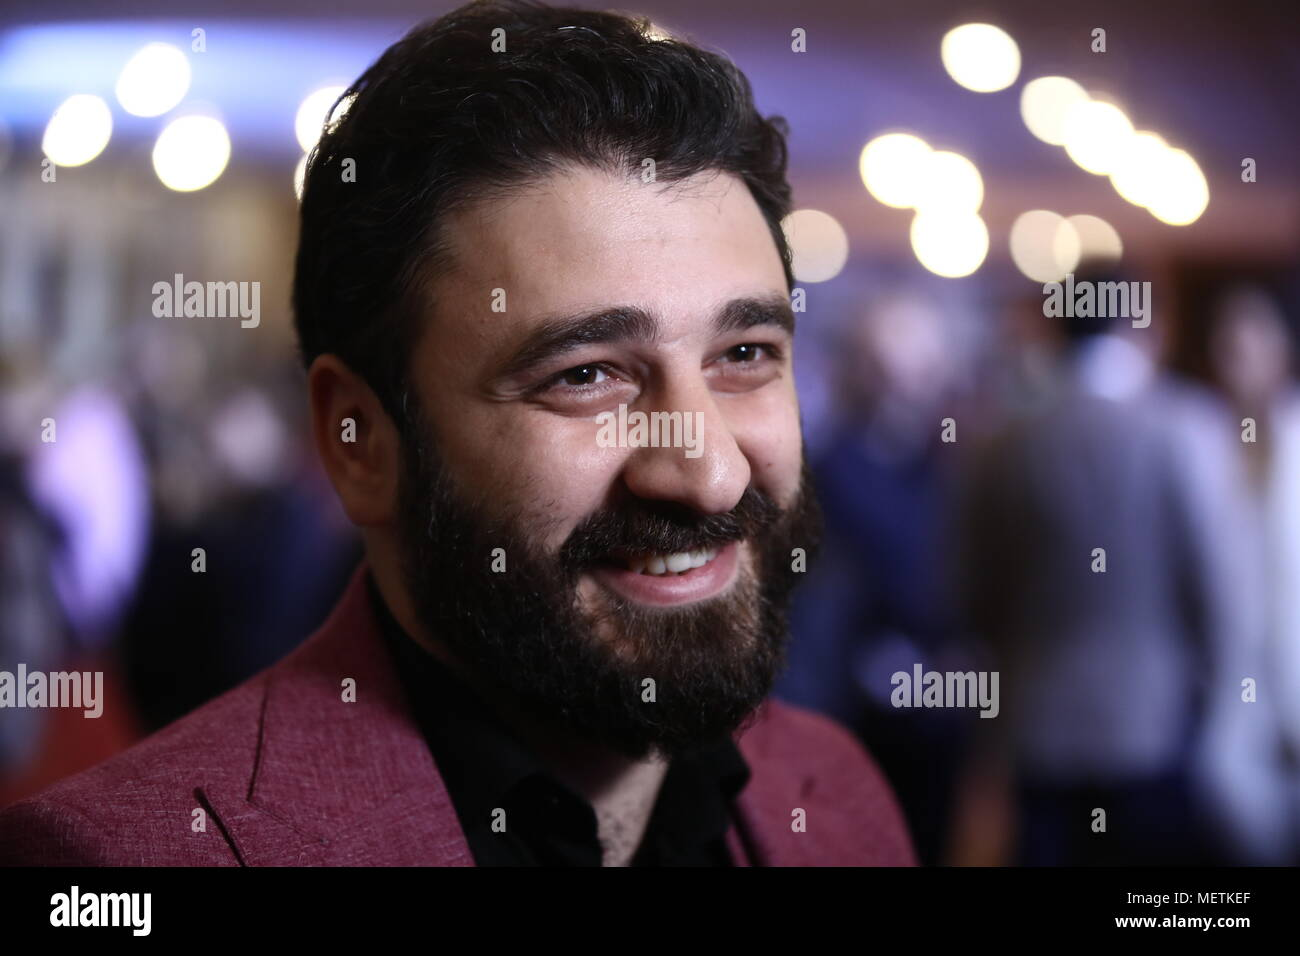 Moscow, Russia. 20th Apr, 2018. MOSCOW, RUSSIA - APRIL 20, 2018: Film director Sarik Andreasyan at a preview screening of his 2018 drama film Neproshchyonny (Unforgiven) at the Central House of Cinematographers at the 40th Moscow International Film Festival. Valery Sharifulin/TASS Credit: ITAR-TASS News Agency/Alamy Live News - Stock Image